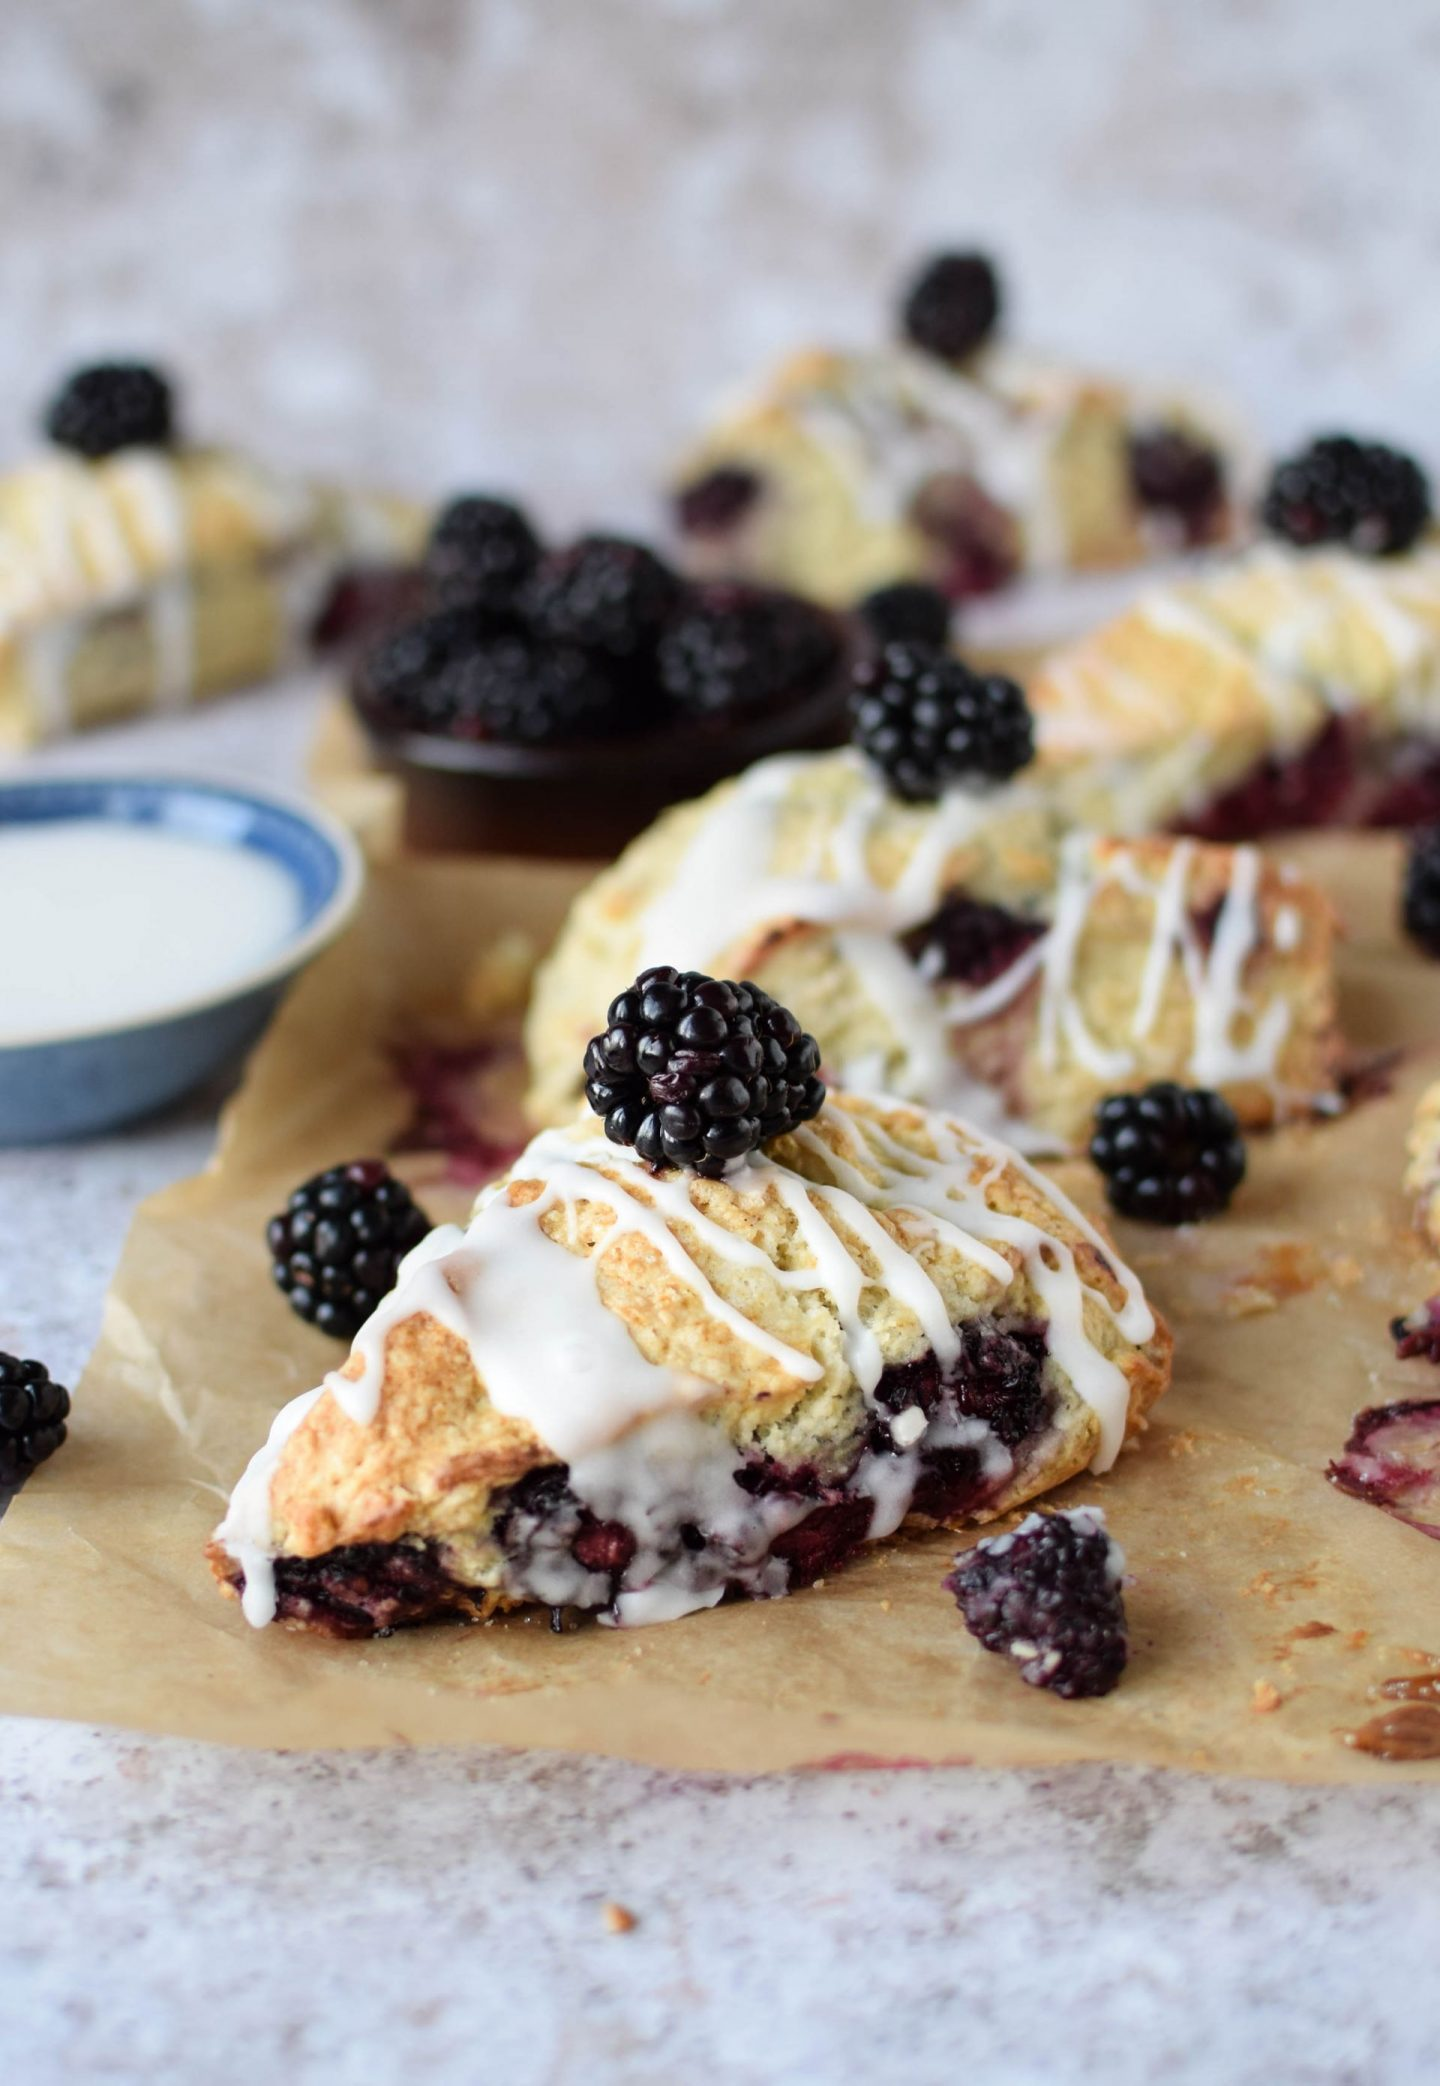 Blackberry and Vanilla Scones on a baking tray drizzled with glaze